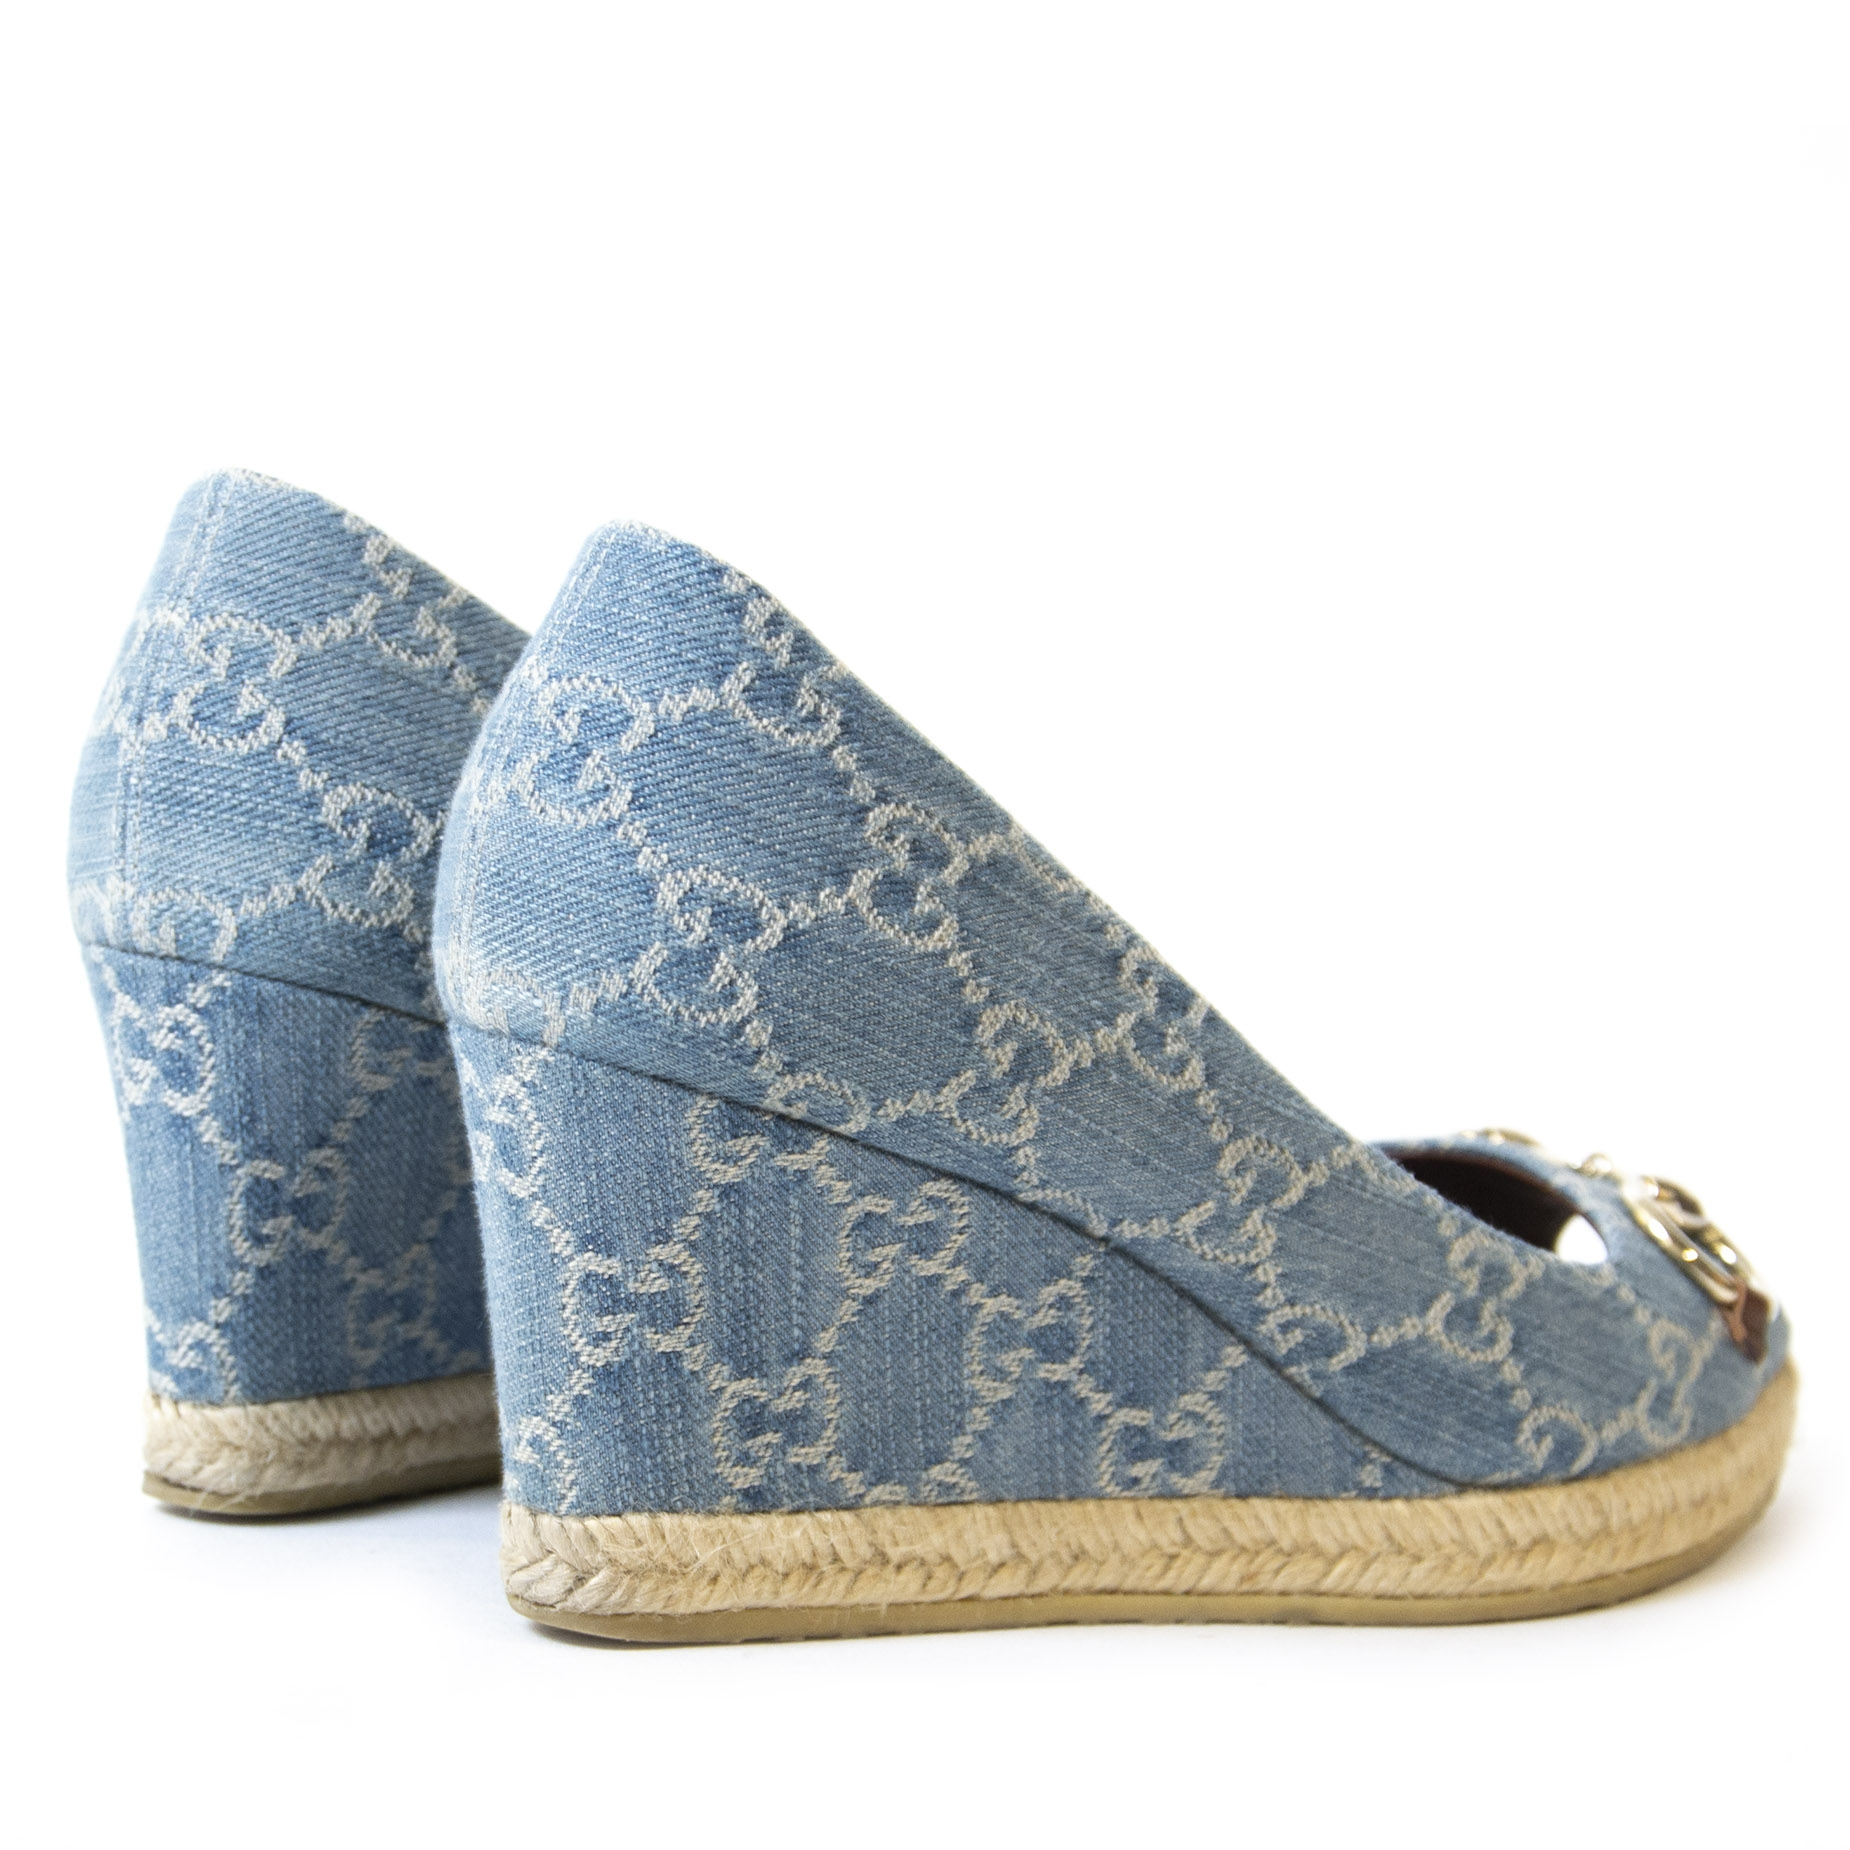 4a25046dc ... Authentieke Tweedehands Gucci Blue Denim Monogram Horsebit Open Toe  Espadrille Wedges - Size 38 juiste prijs